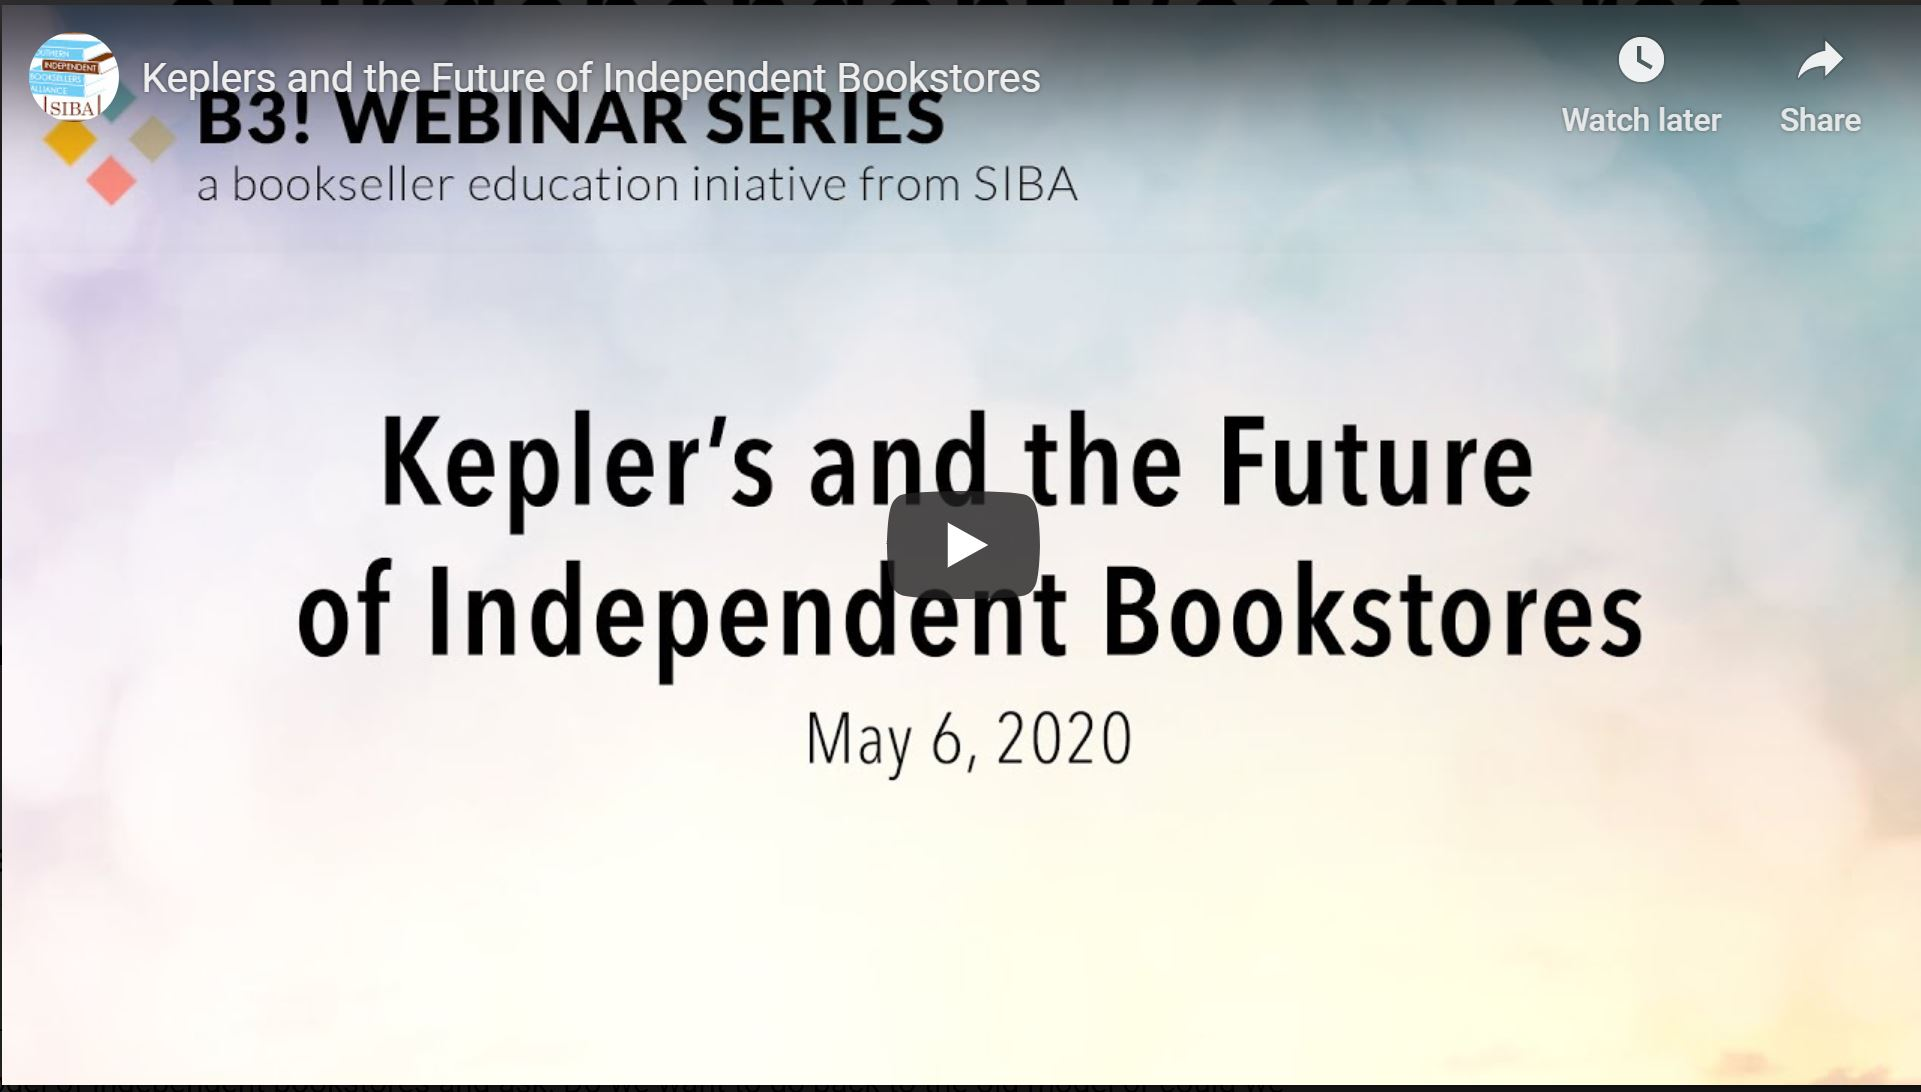 Kepler's and the Future of Independent Bookstores